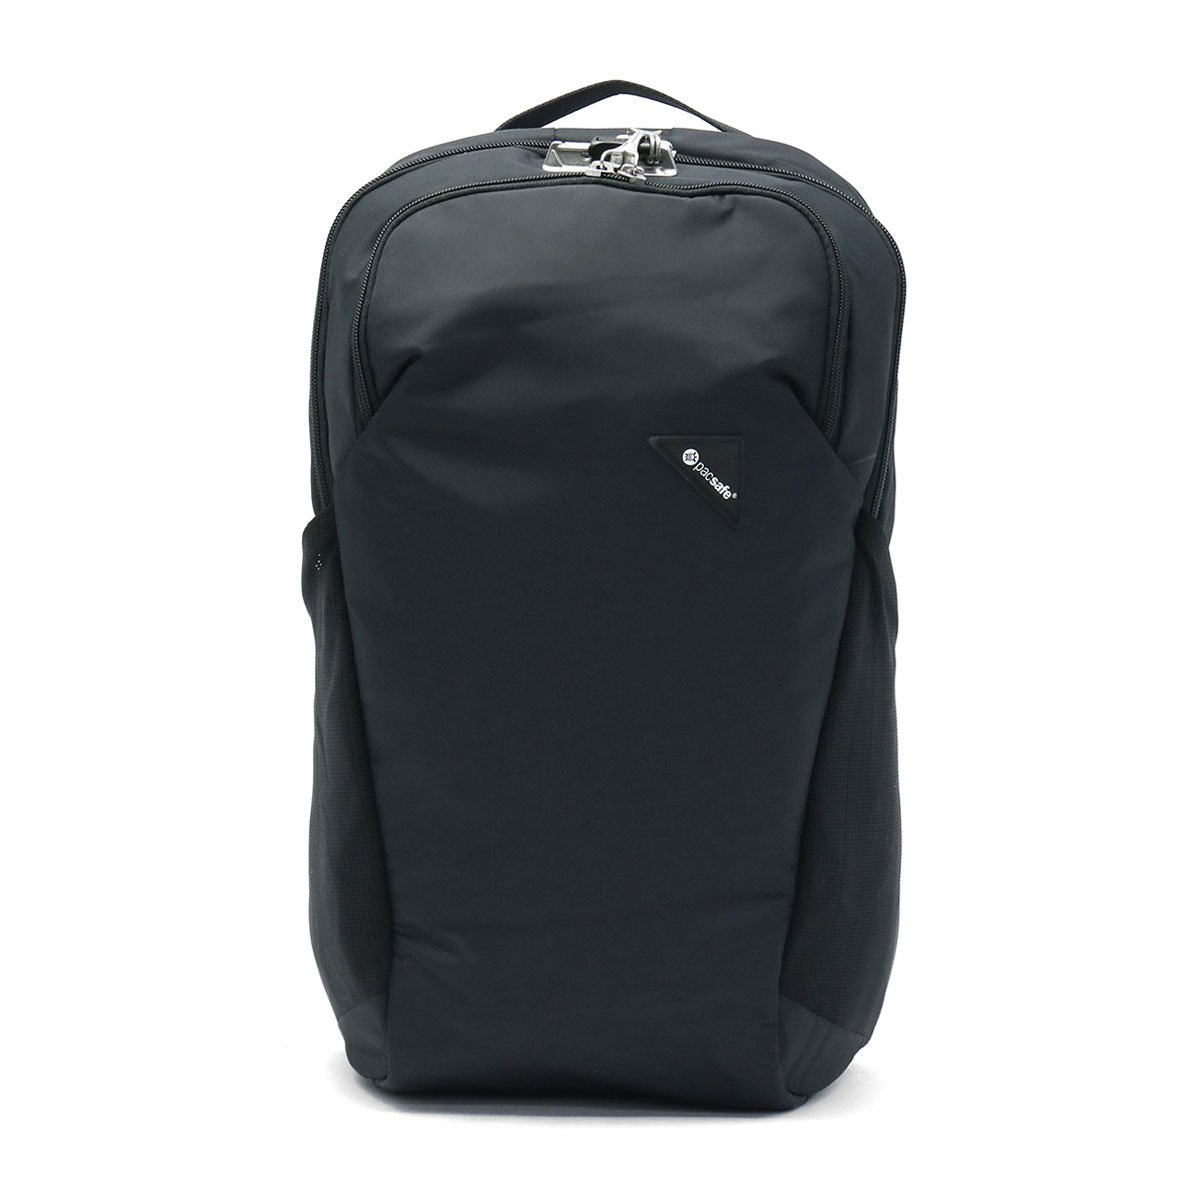 The PacSafe Vibe 20 anti-theft travel daypack travel product recommended by Nicolette Kay on Lifney.